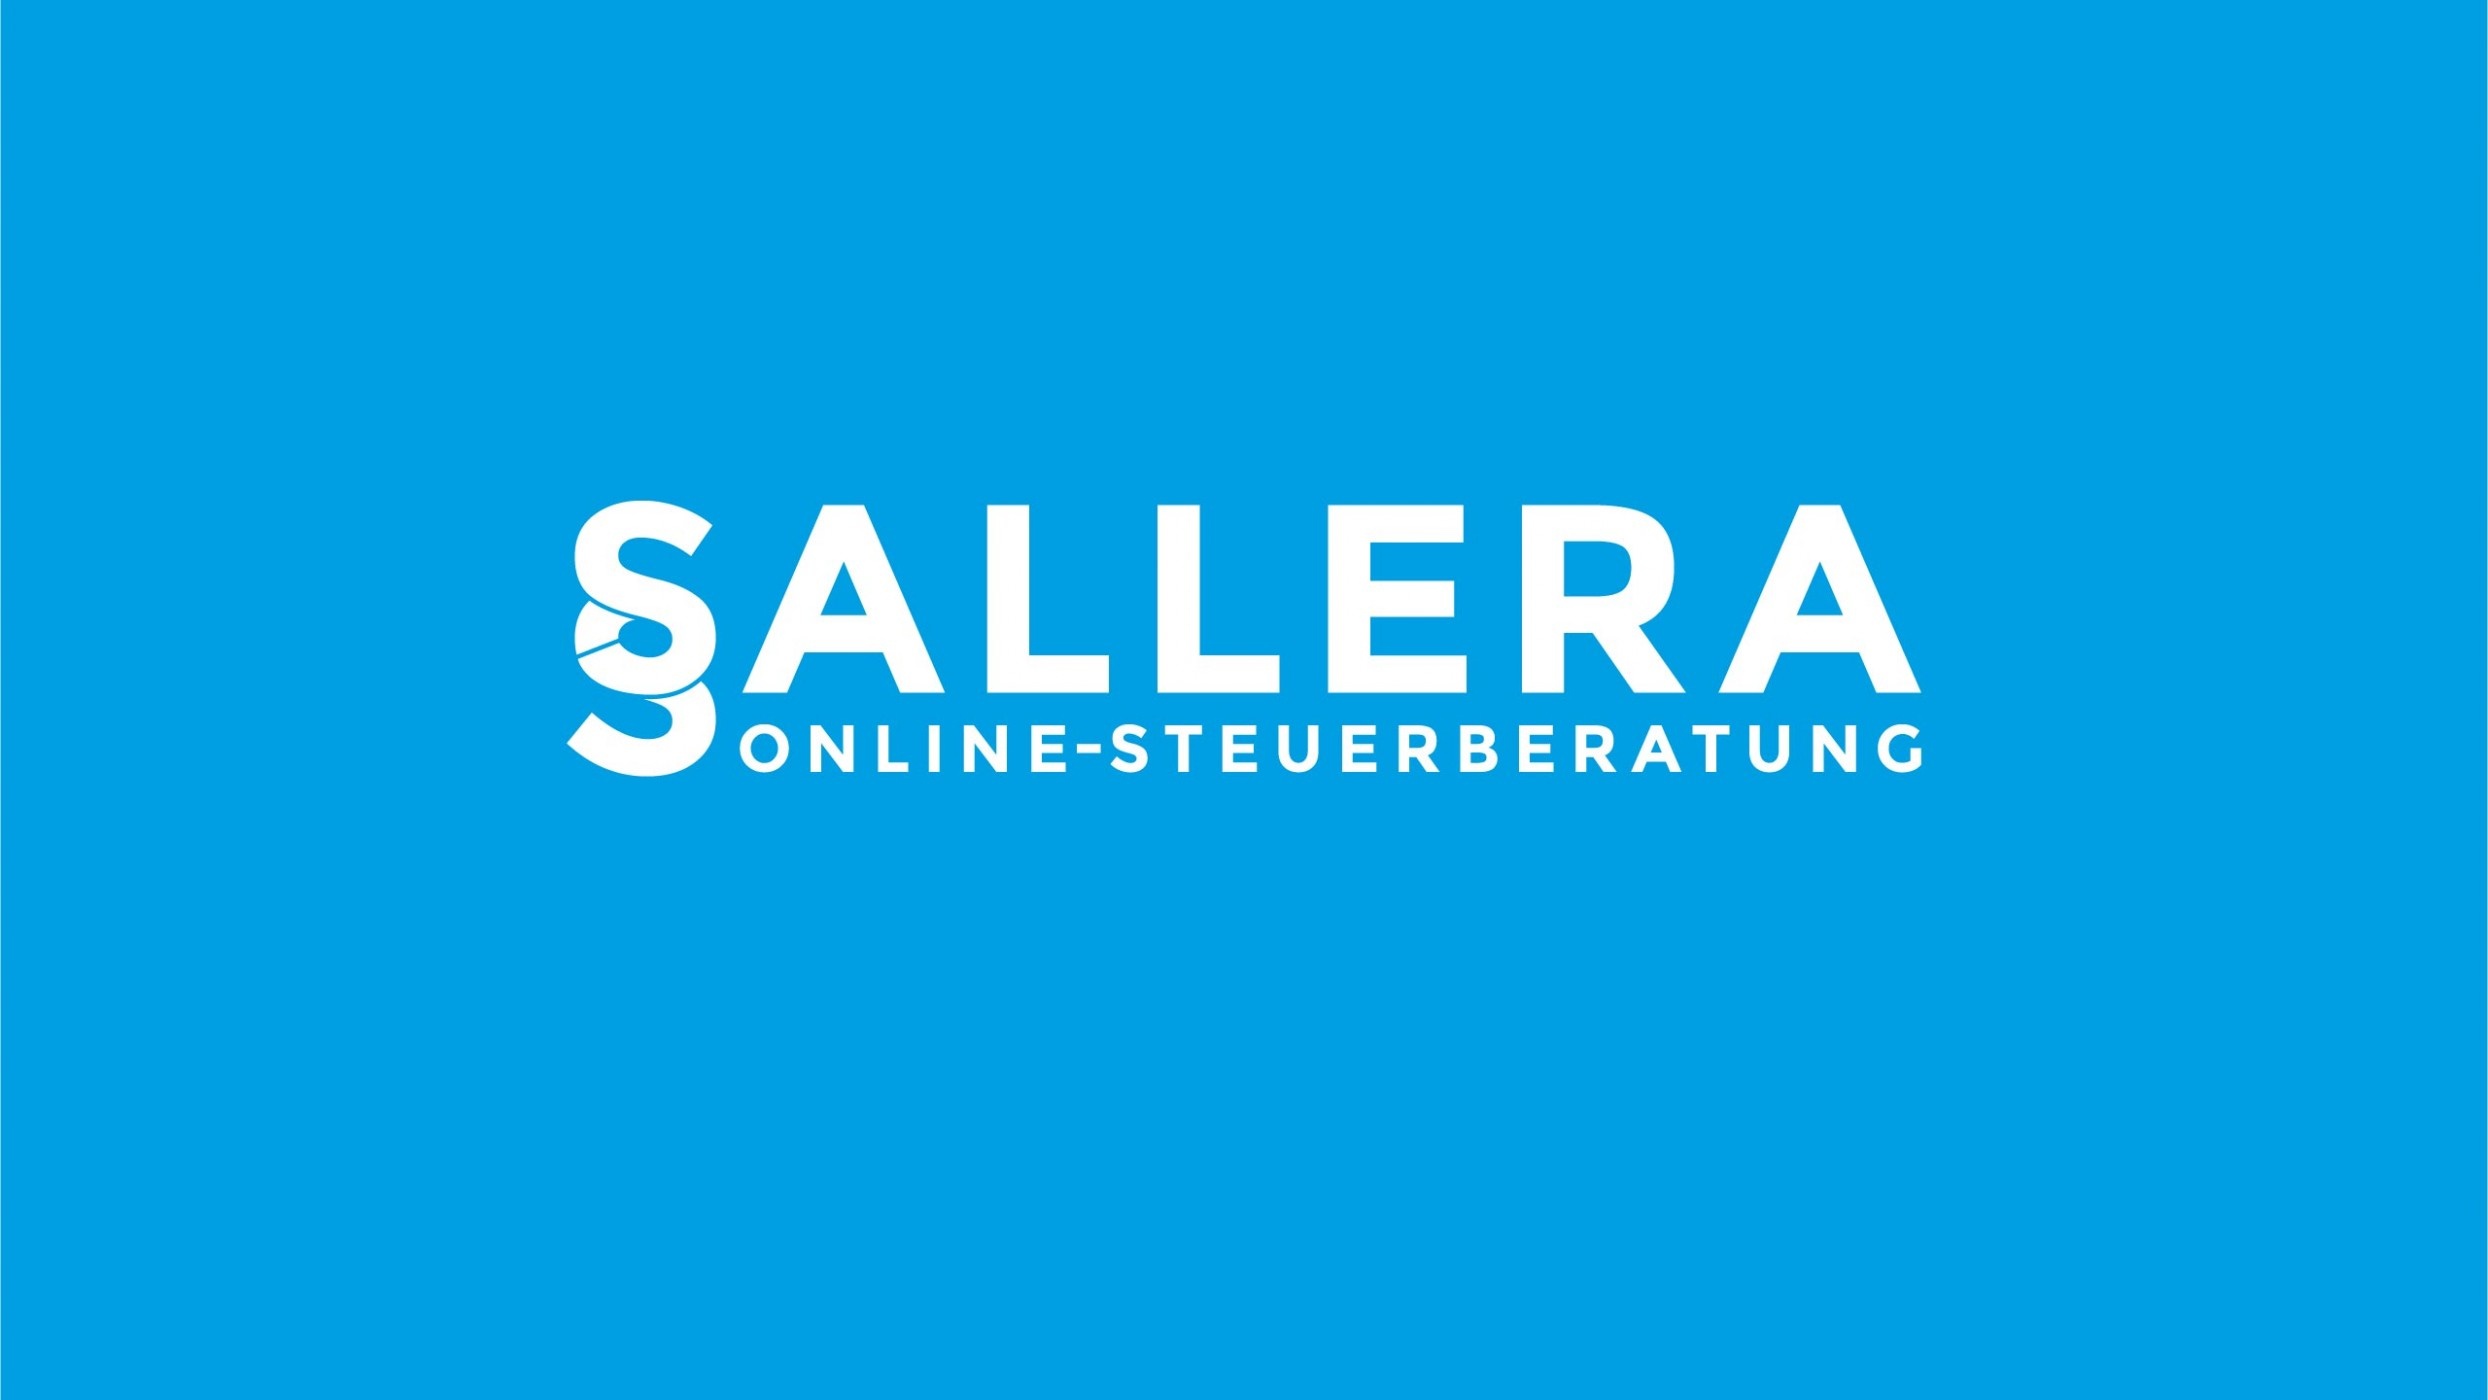 sallera-corporate-design-06